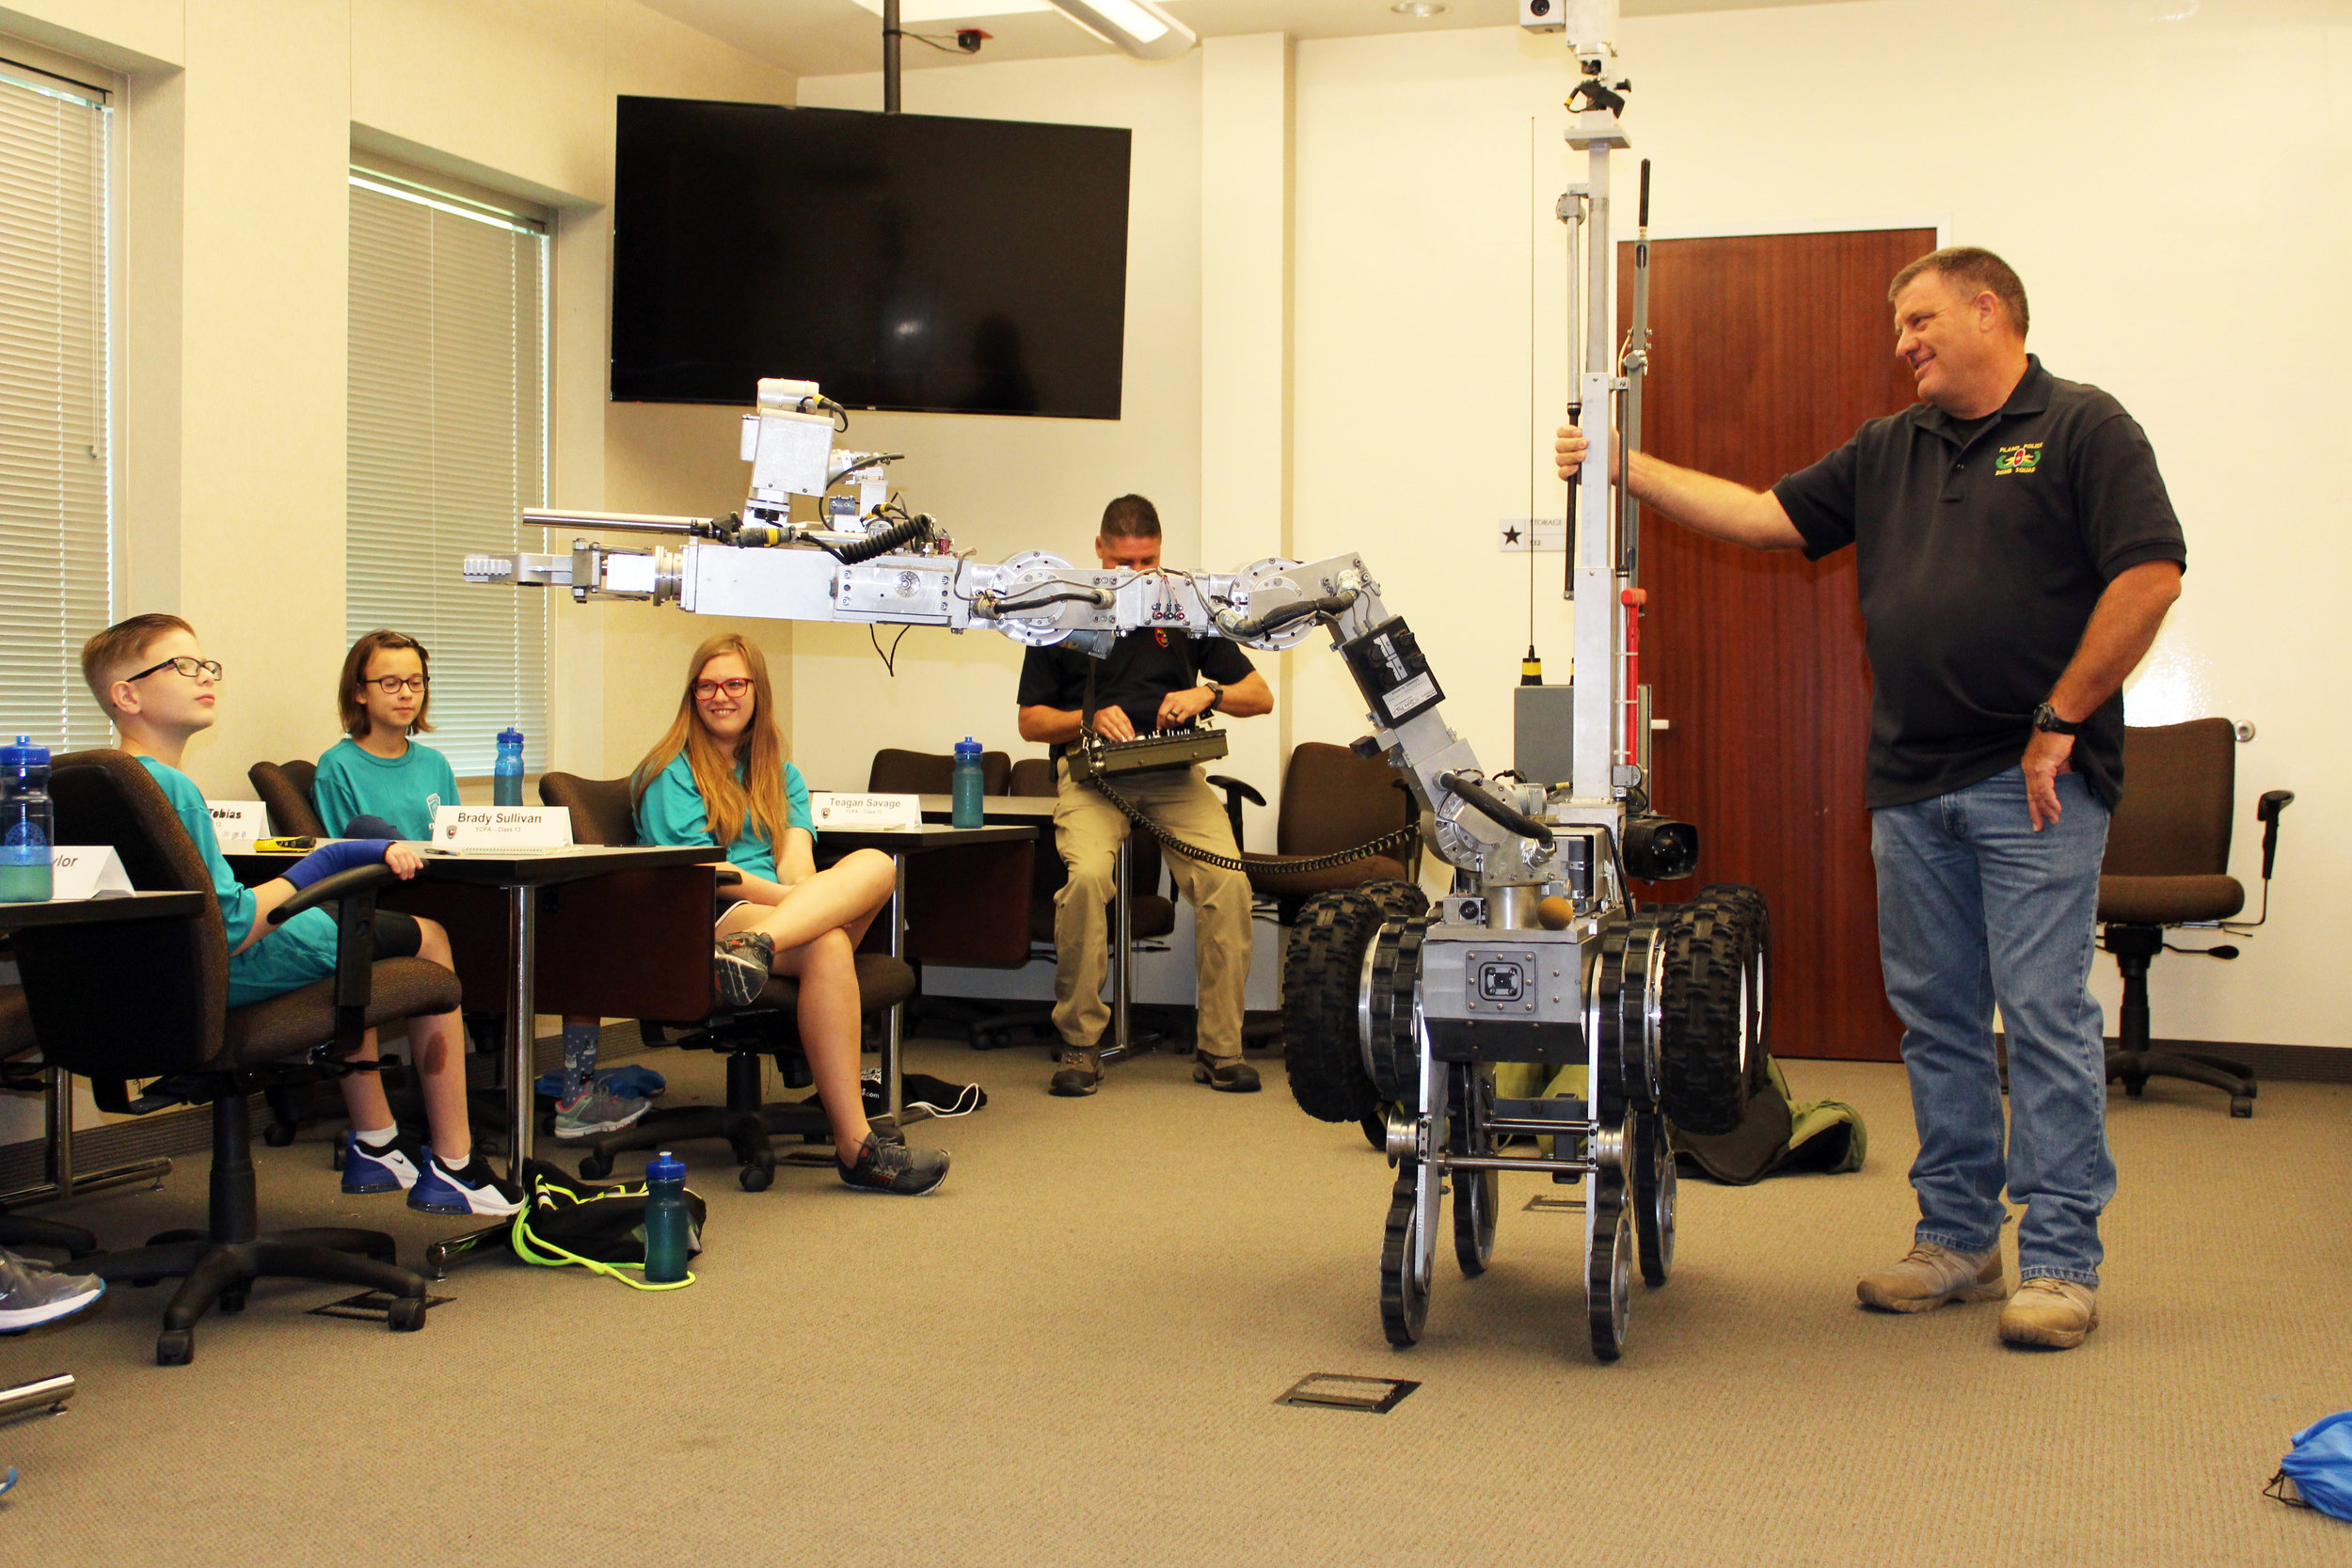 Members of Plano bomb squad demonstrated their bomb robot's capabilities.